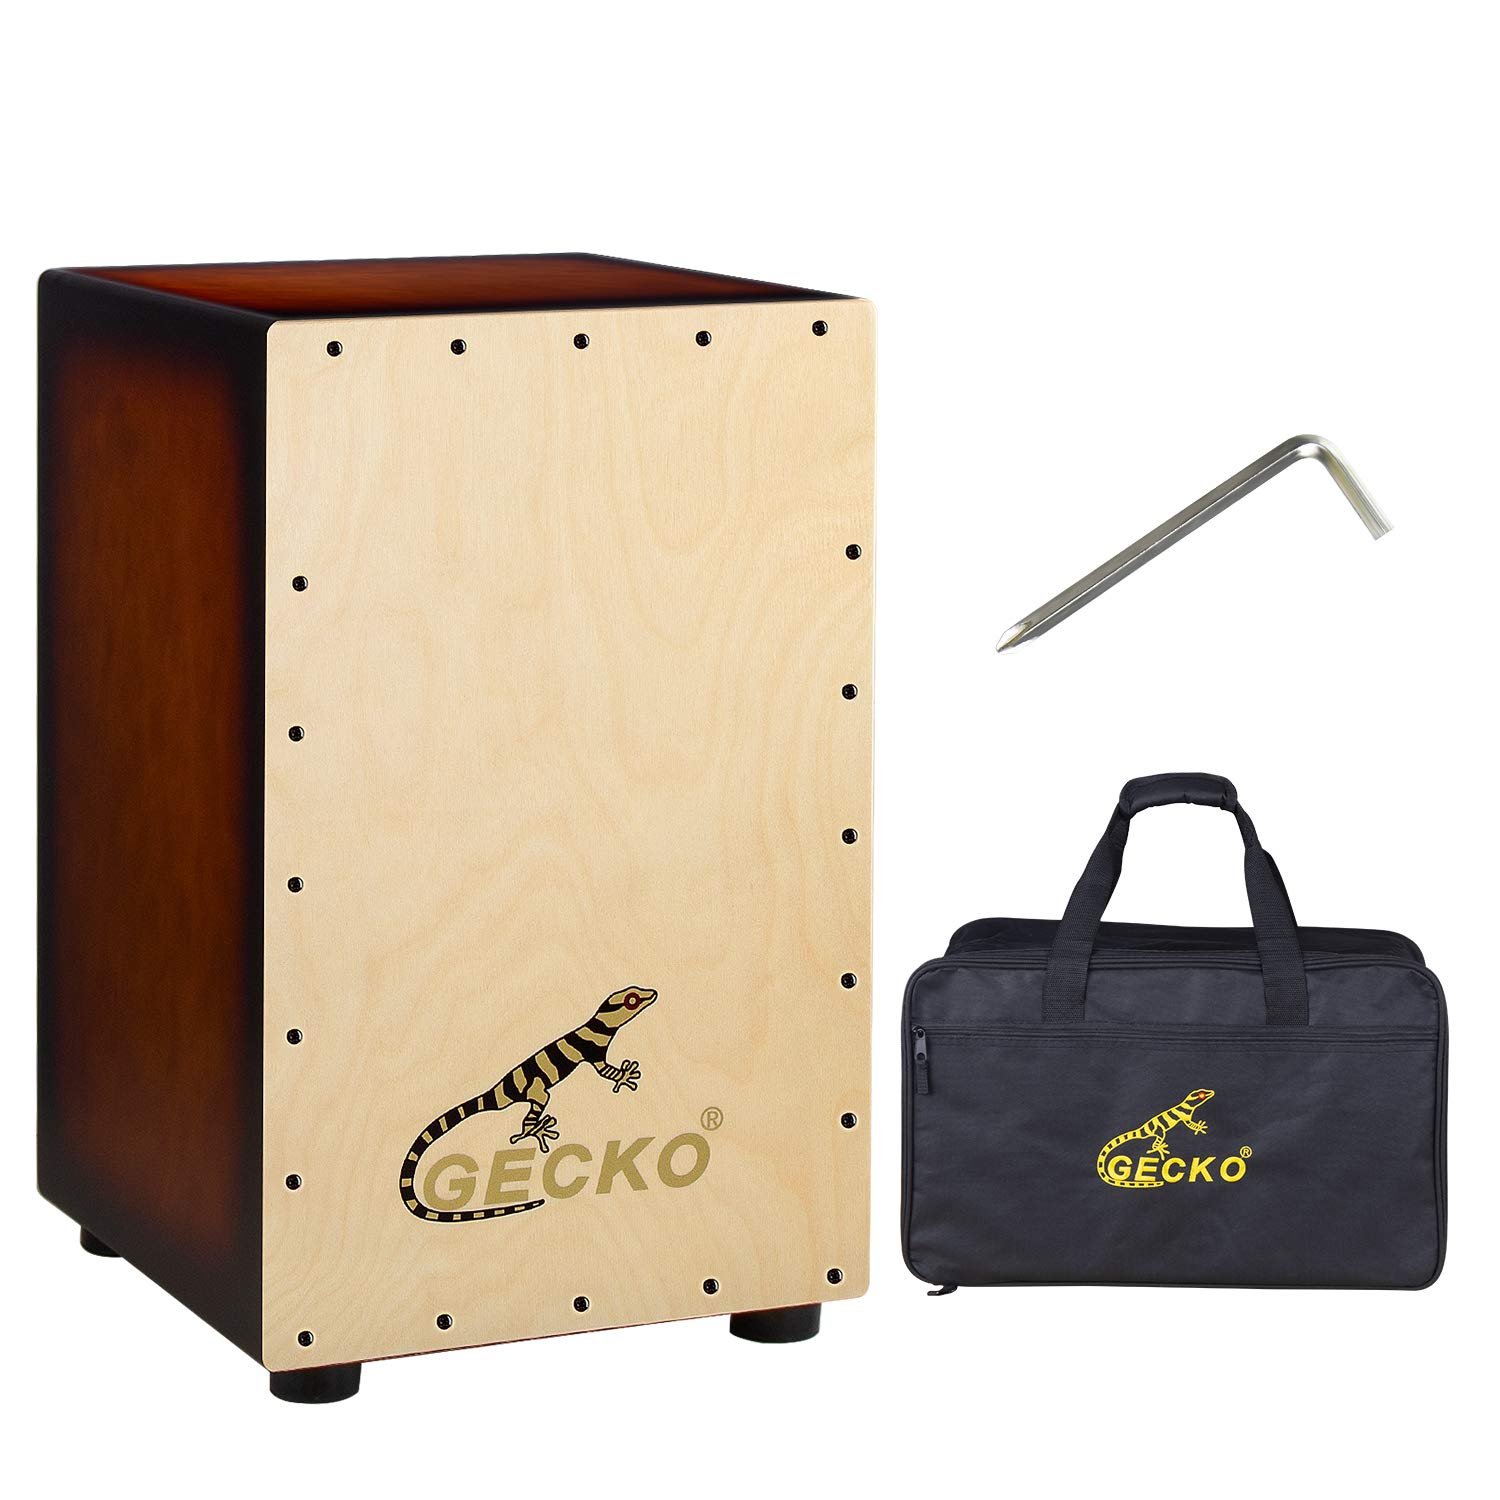 GECKO Wooden Cajon Stringed Percussion Box Gecko Pattern Hand Drum with Large Rubber Feet by GECKO